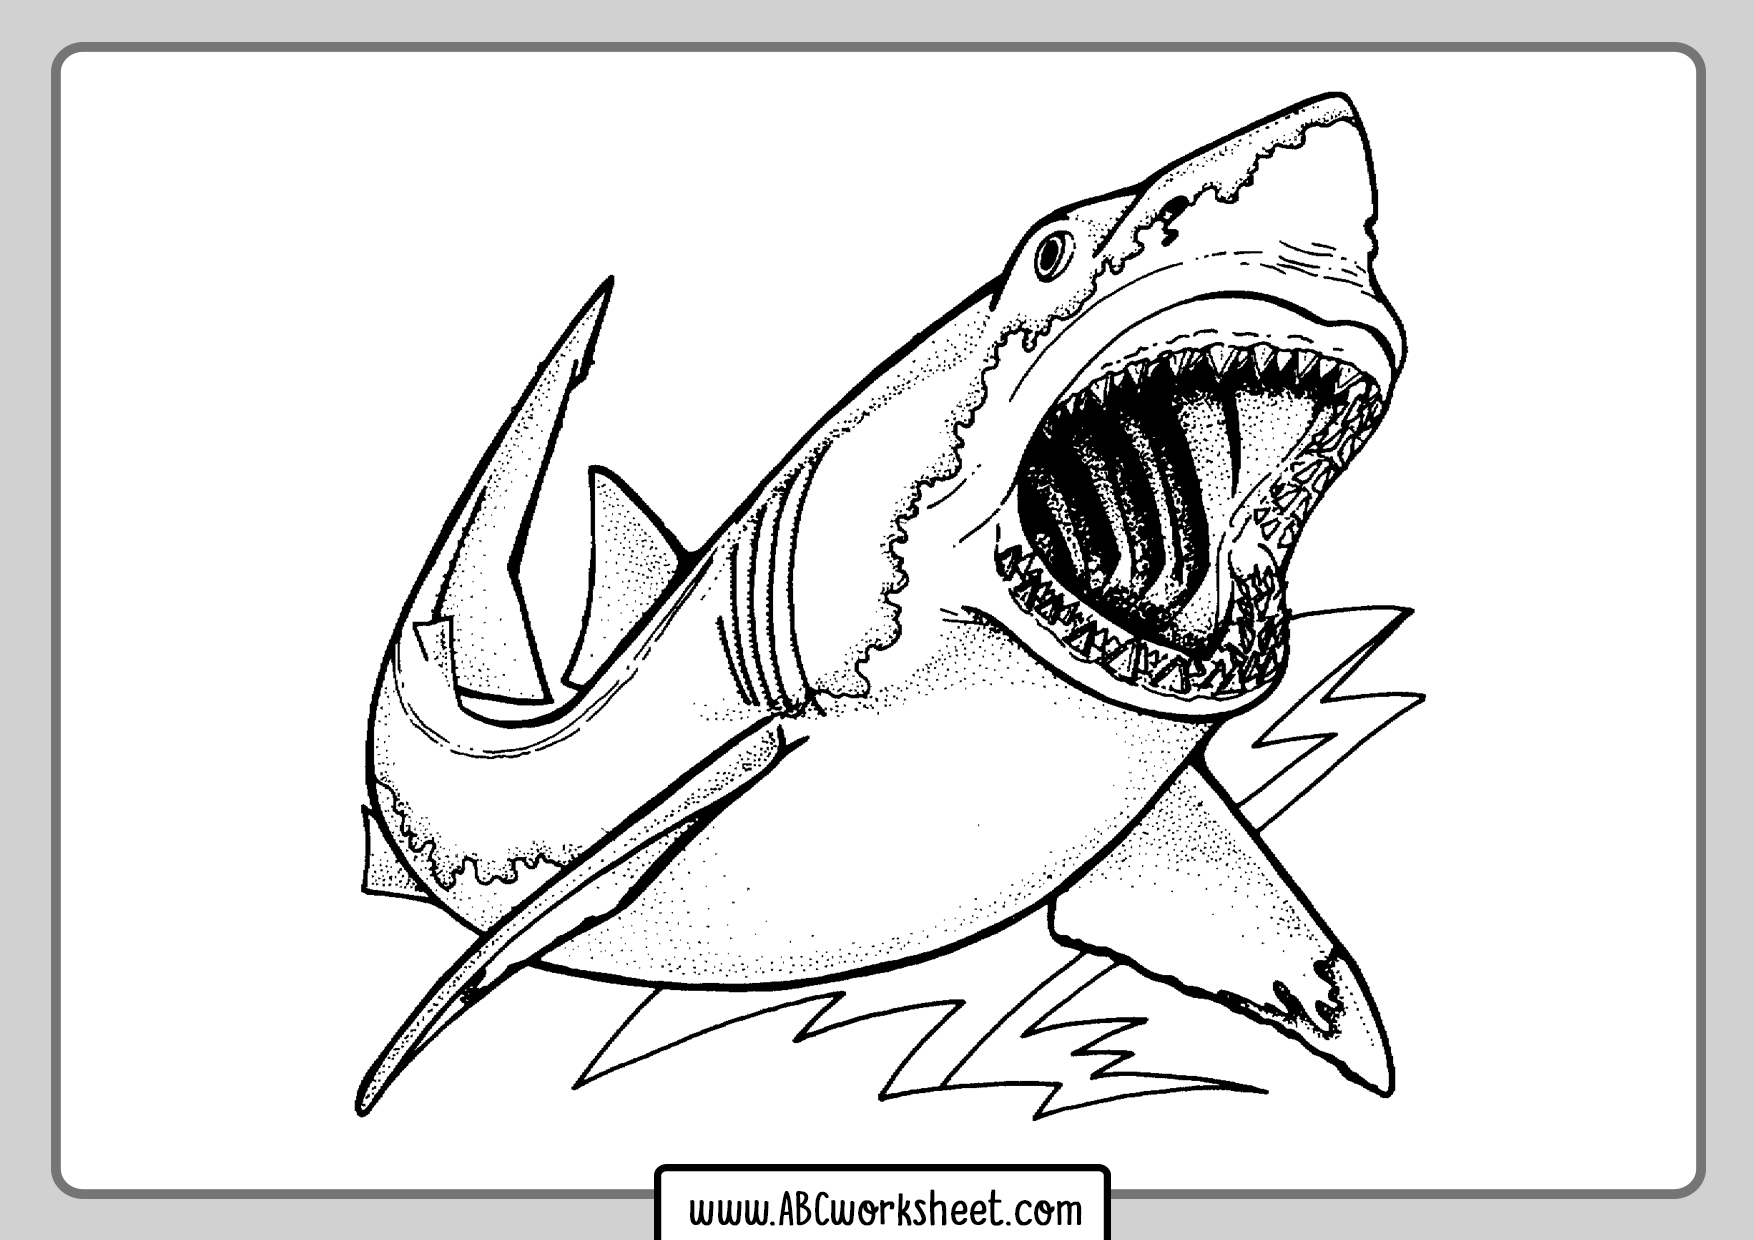 Coloring Page Shark (With images) | Shark coloring pages, Animal ... | 1240x1754